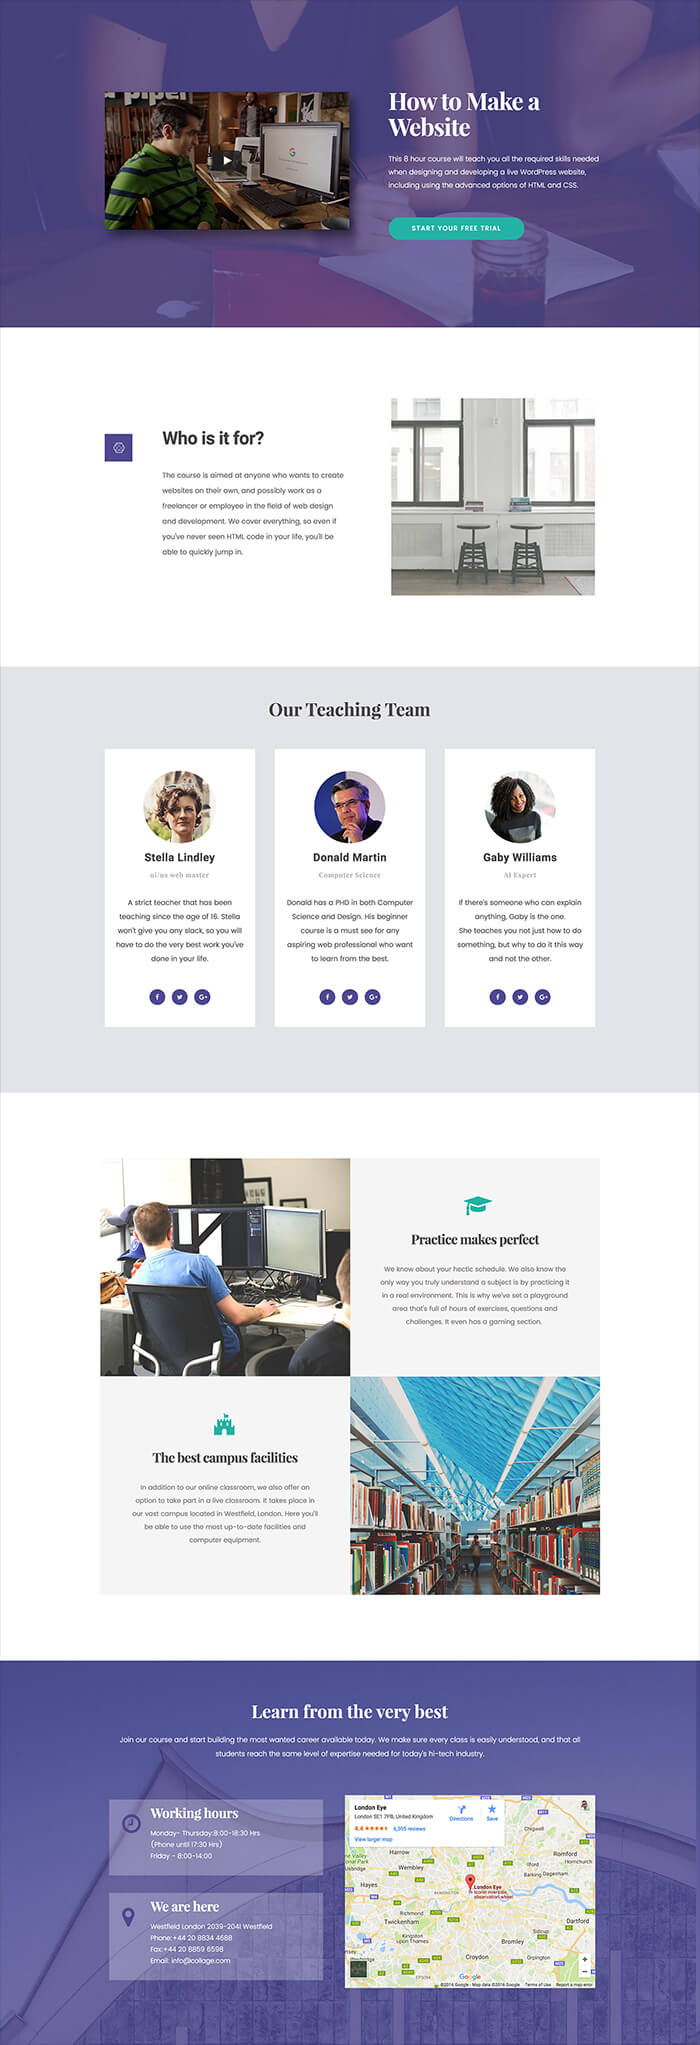 5 Brand New FREE Elementor Homepage Templates